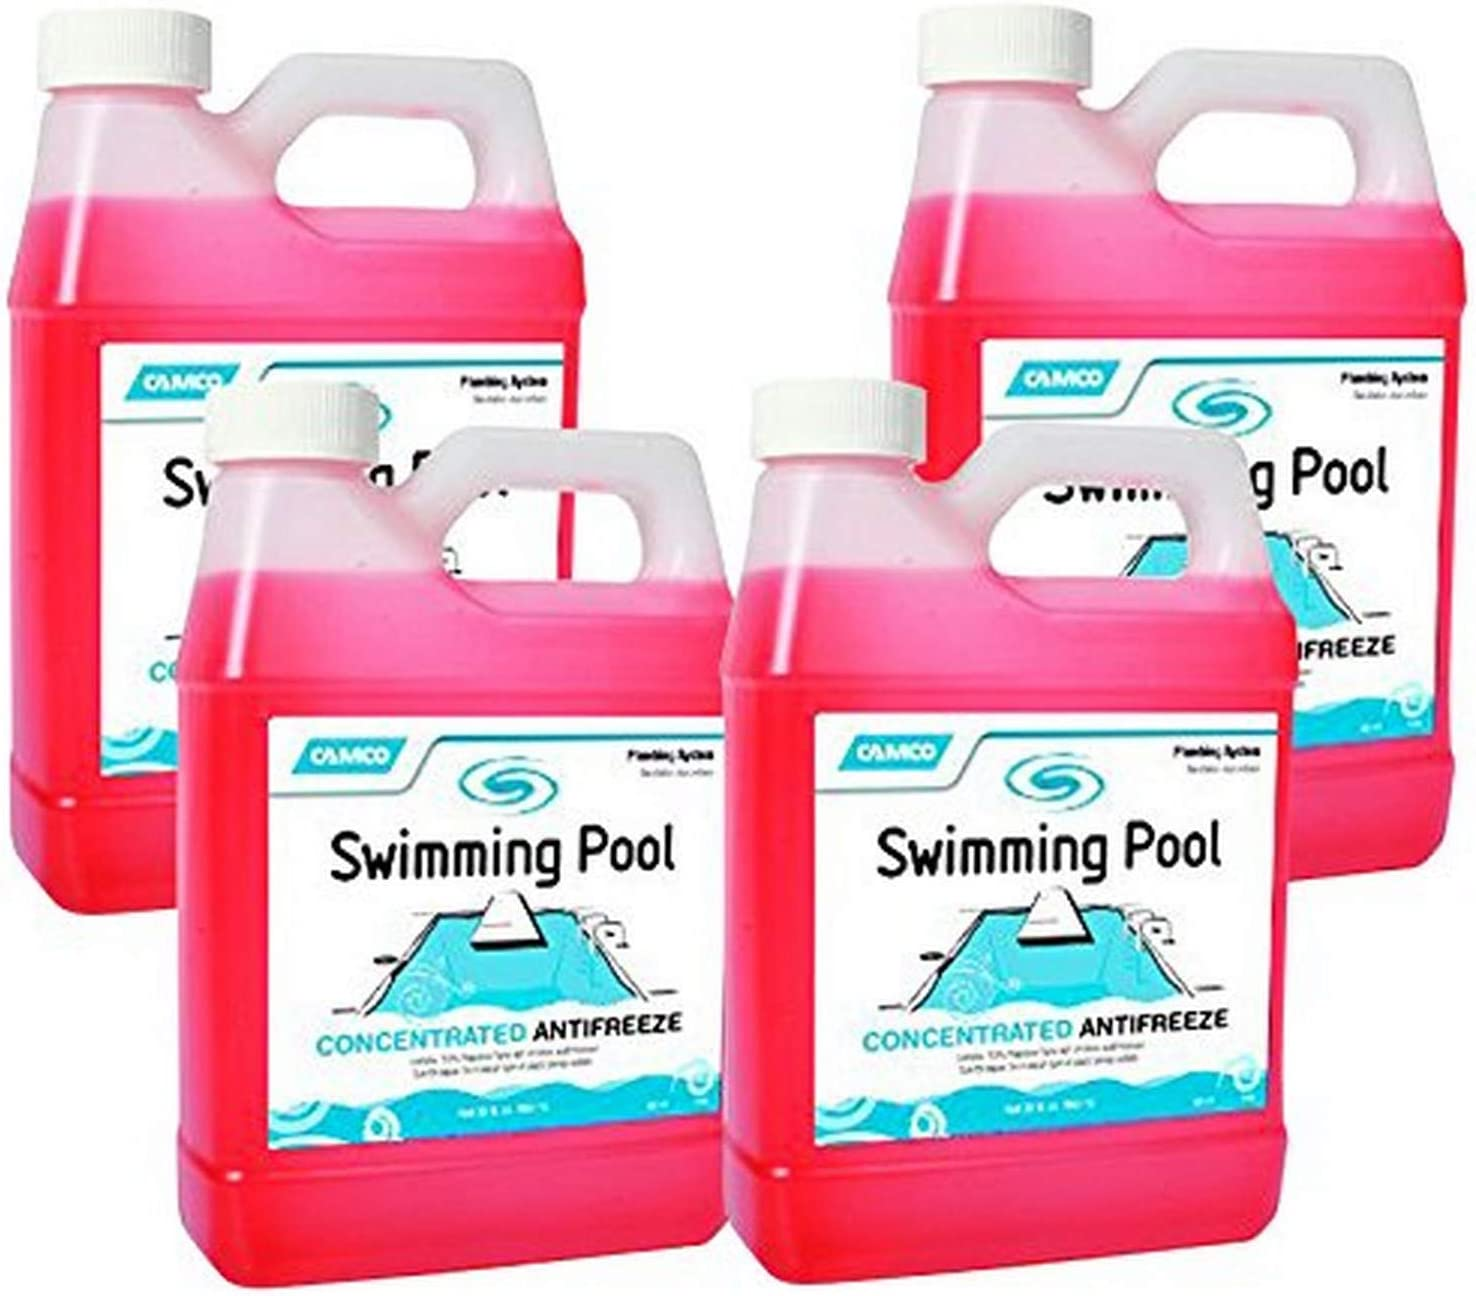 4 Pack Camco 30054 04 Swimming Pool Concentrated Antifreeze 1 Quart Pools Hot Tubs Supplies Patio Lawn Garden Ekbotefurniture Com